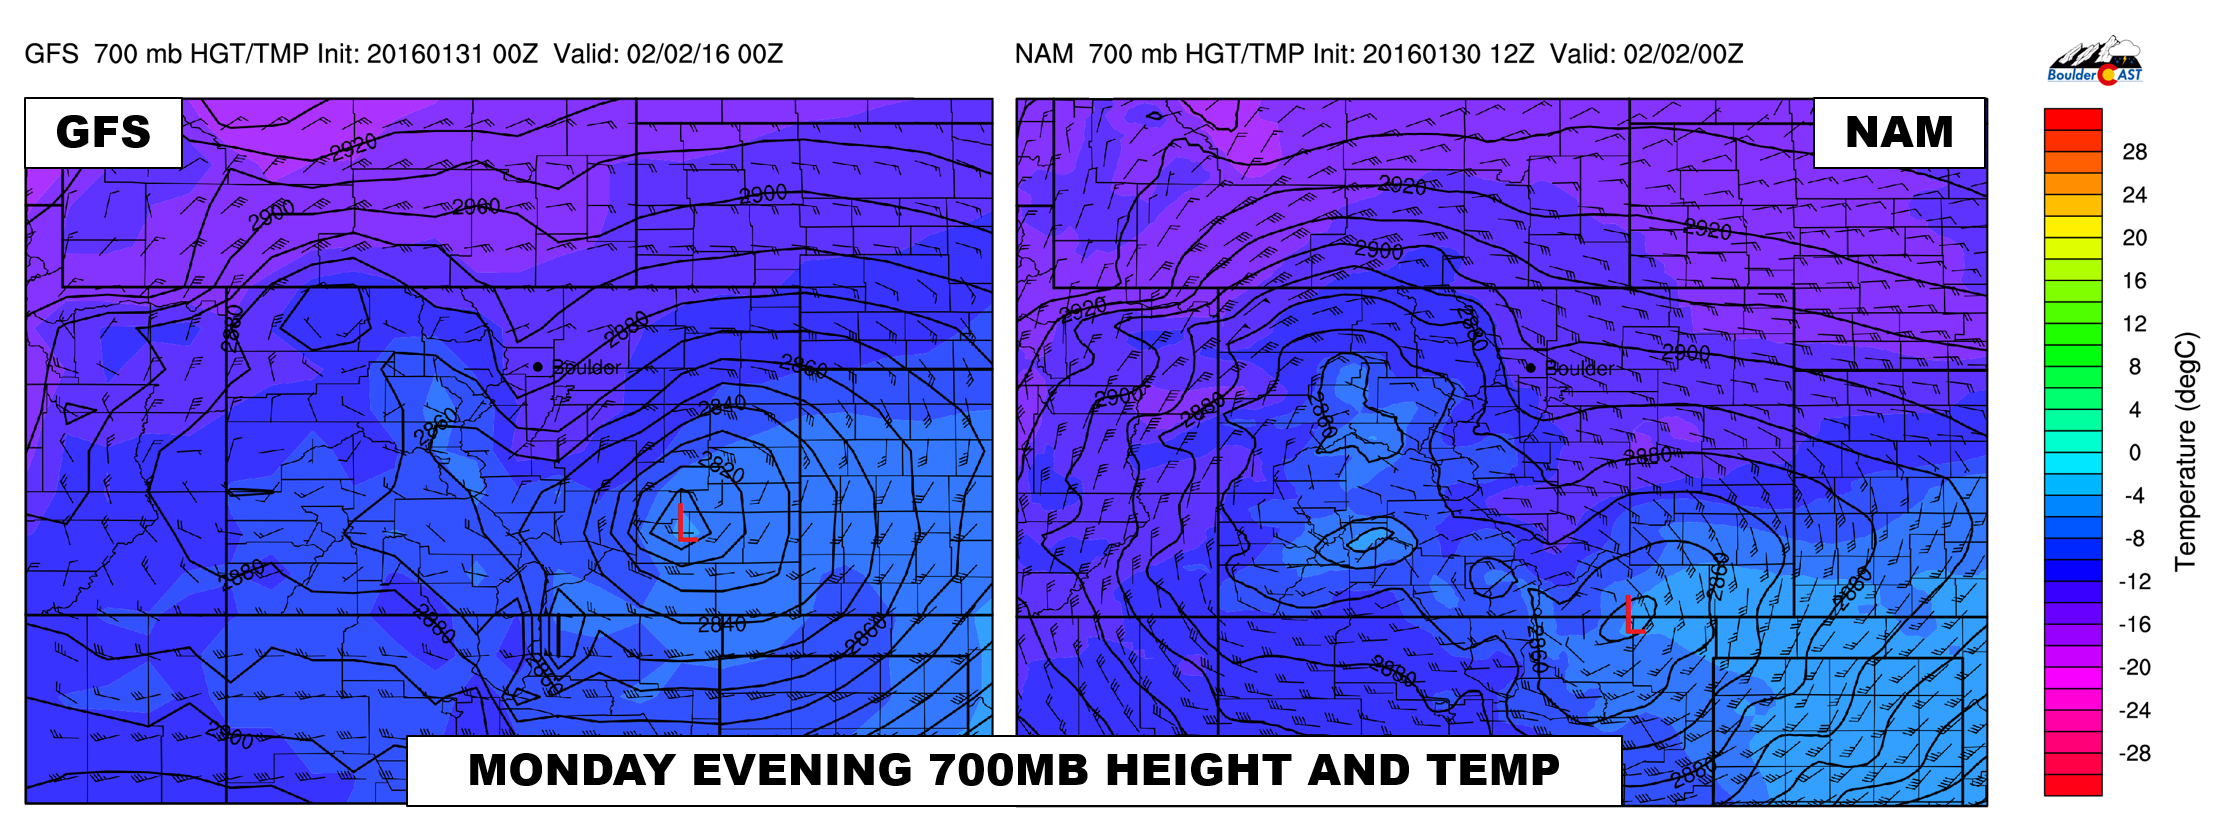 700mb height and temperature map for Monday evening from the GFS (left) and NAM (right) models.